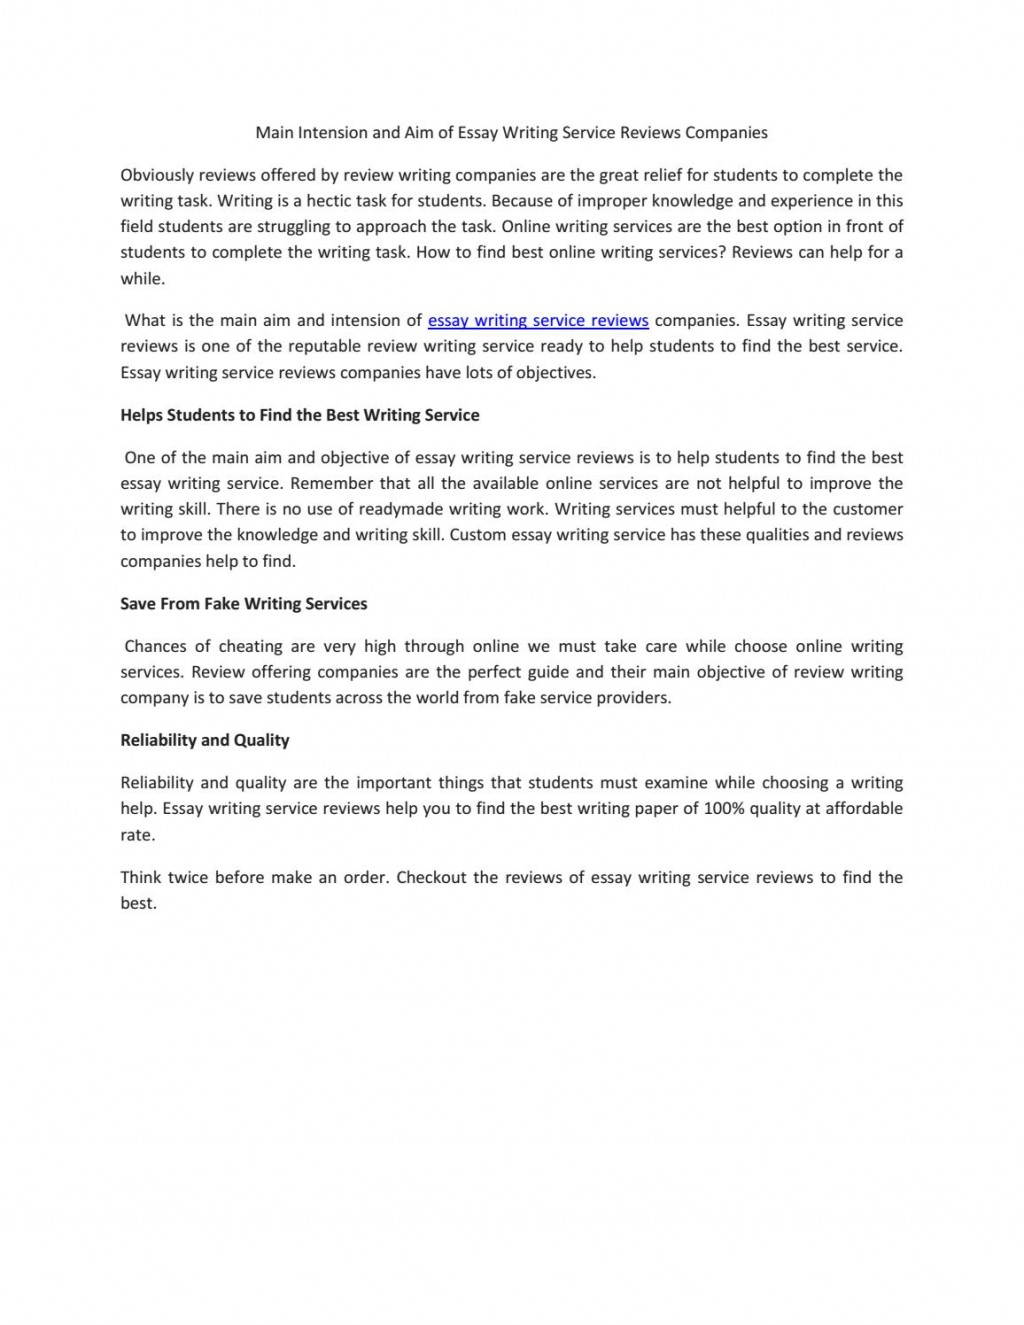 005 Essay Example Best Help Review Page 1 Impressive Writing Services Uk Reviews Service Large